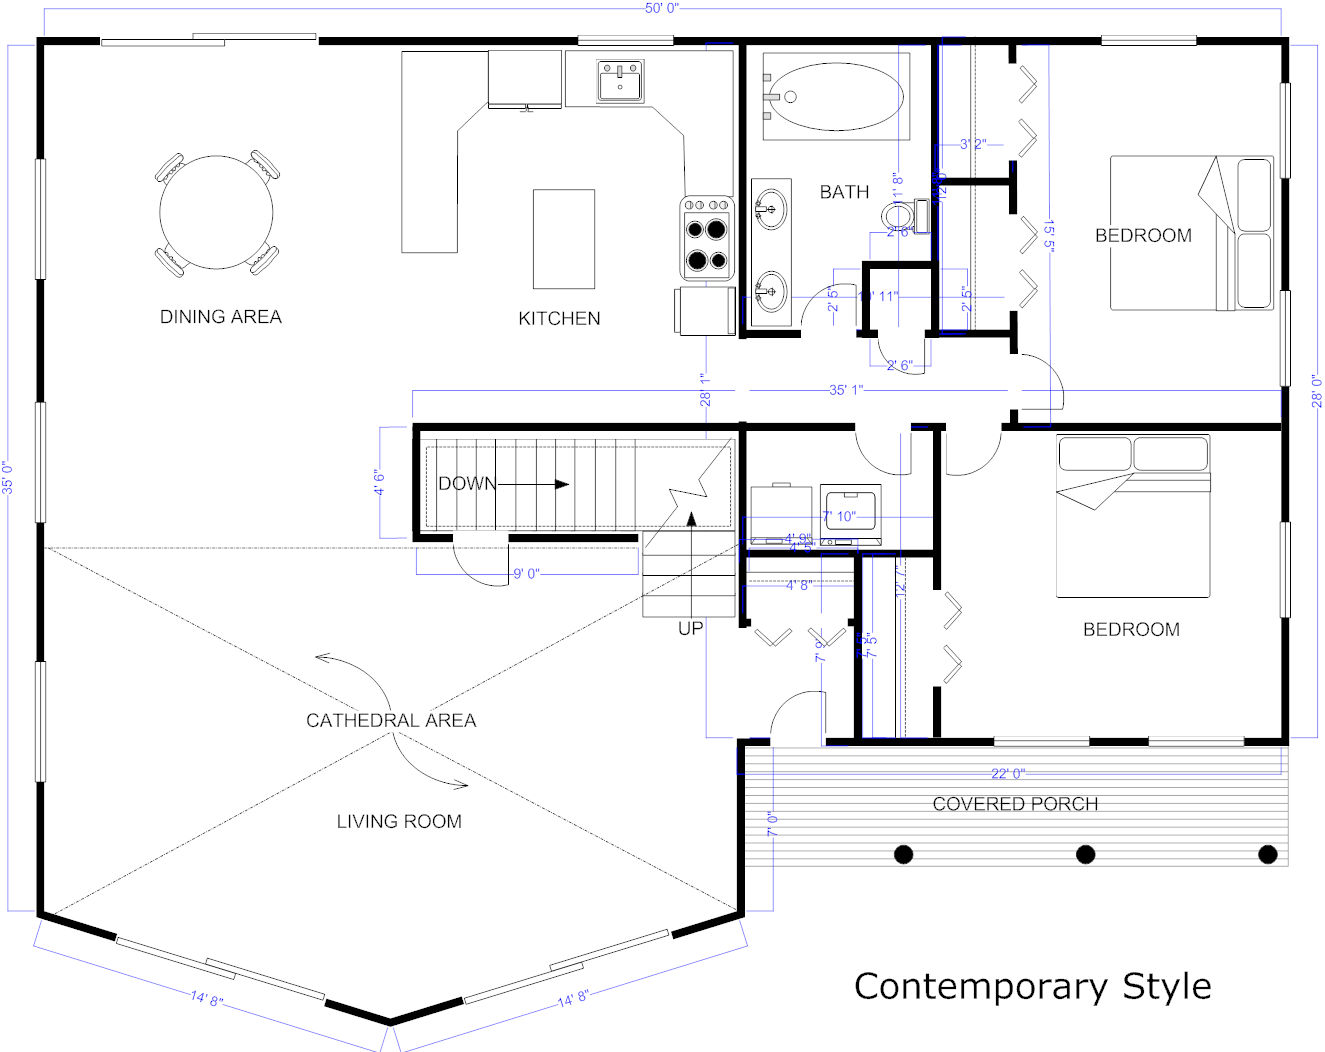 Smartdraw Floor Plan App